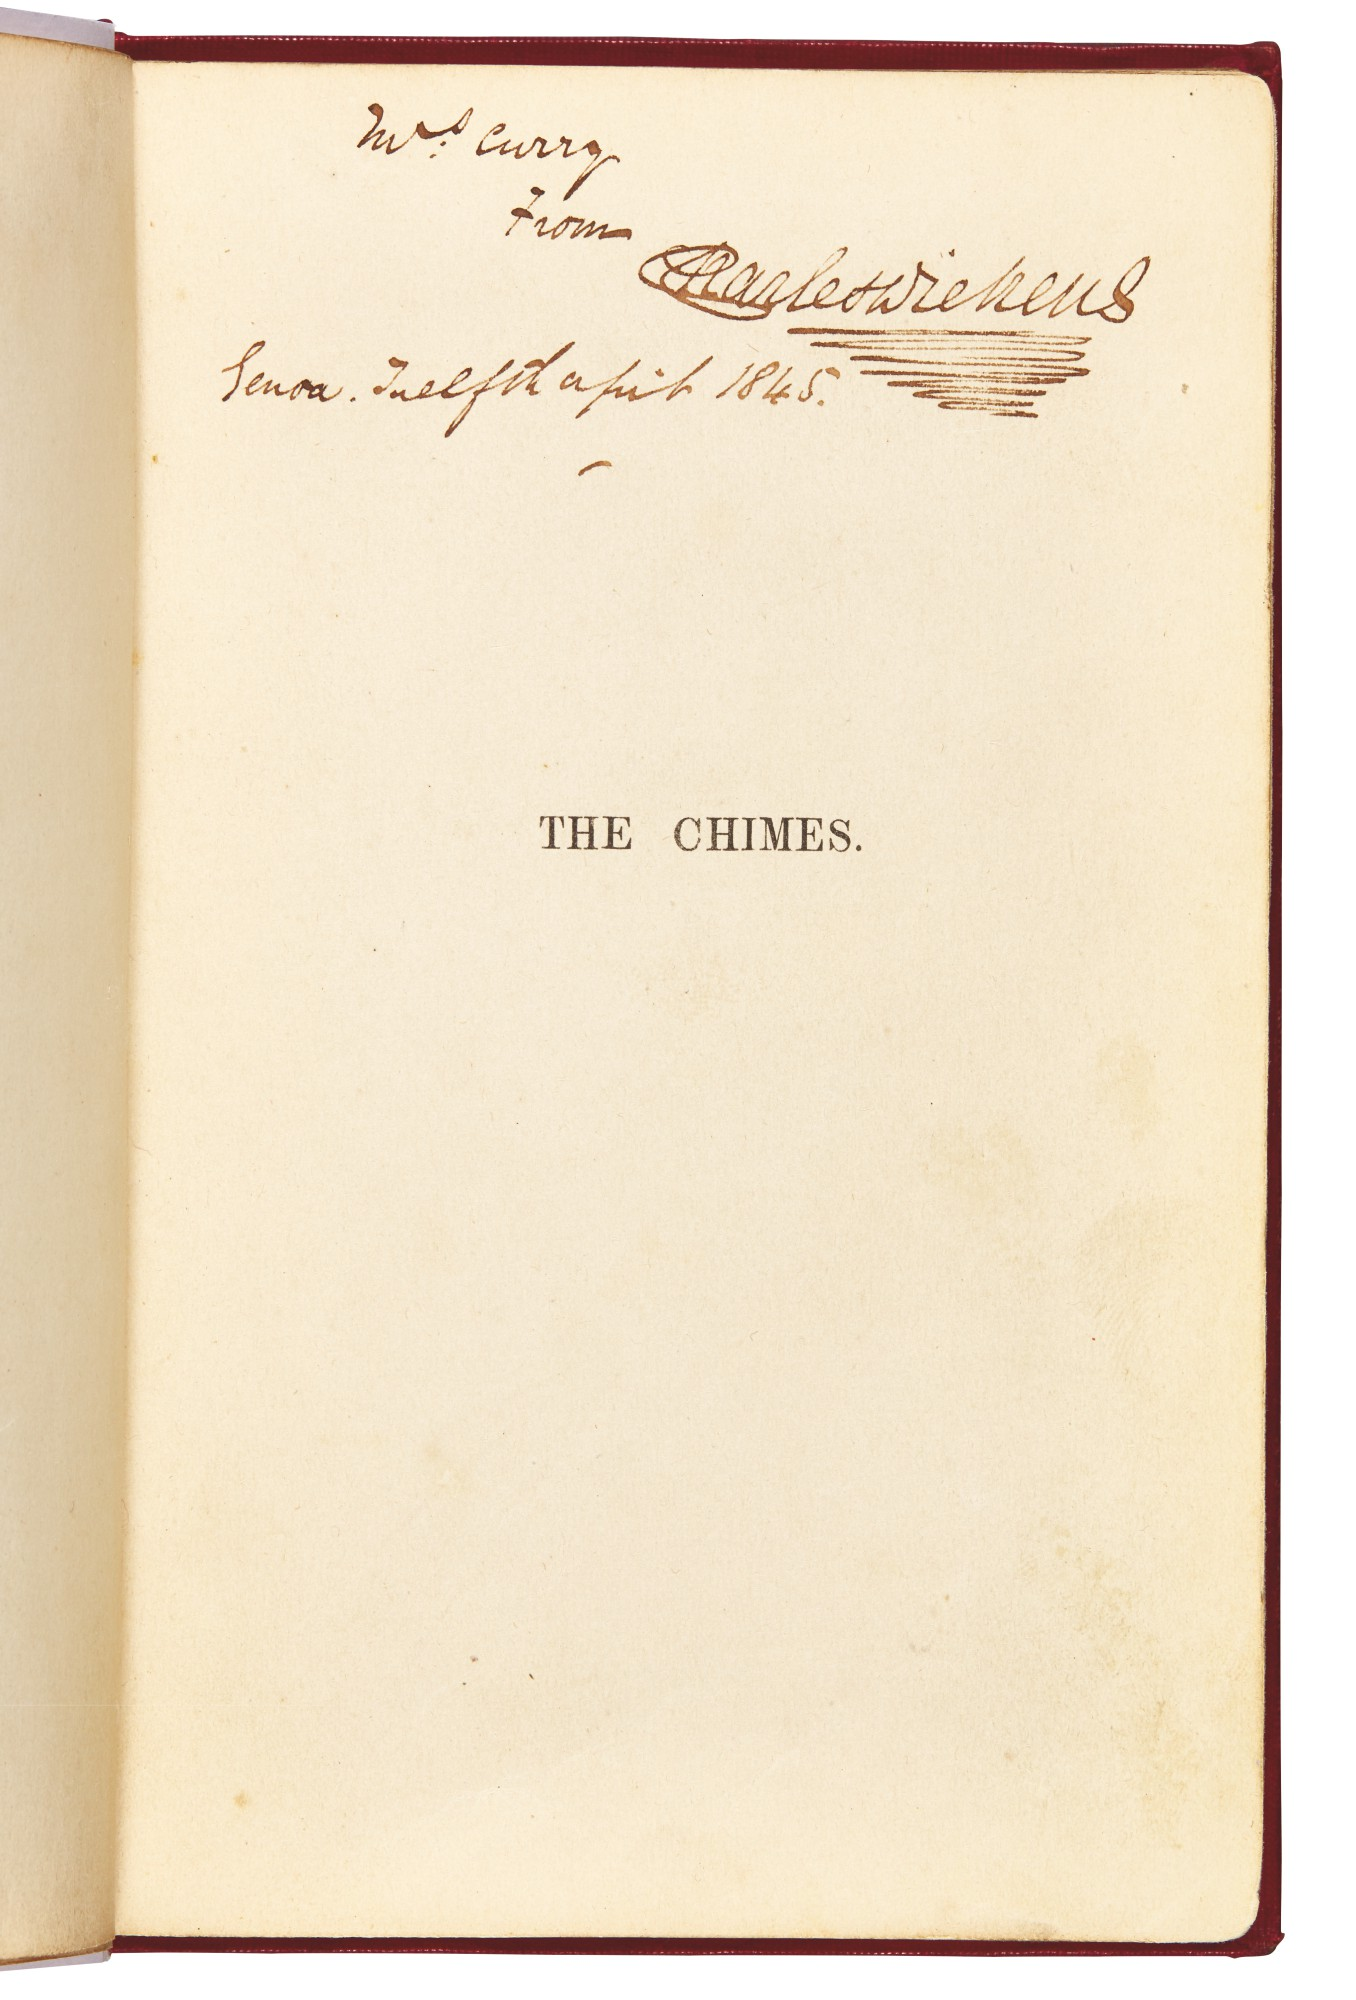 Dickens, The Chimes, 1845, eleventh edition, presentation copy inscribed to Mrs Curry, with autograph letter signed